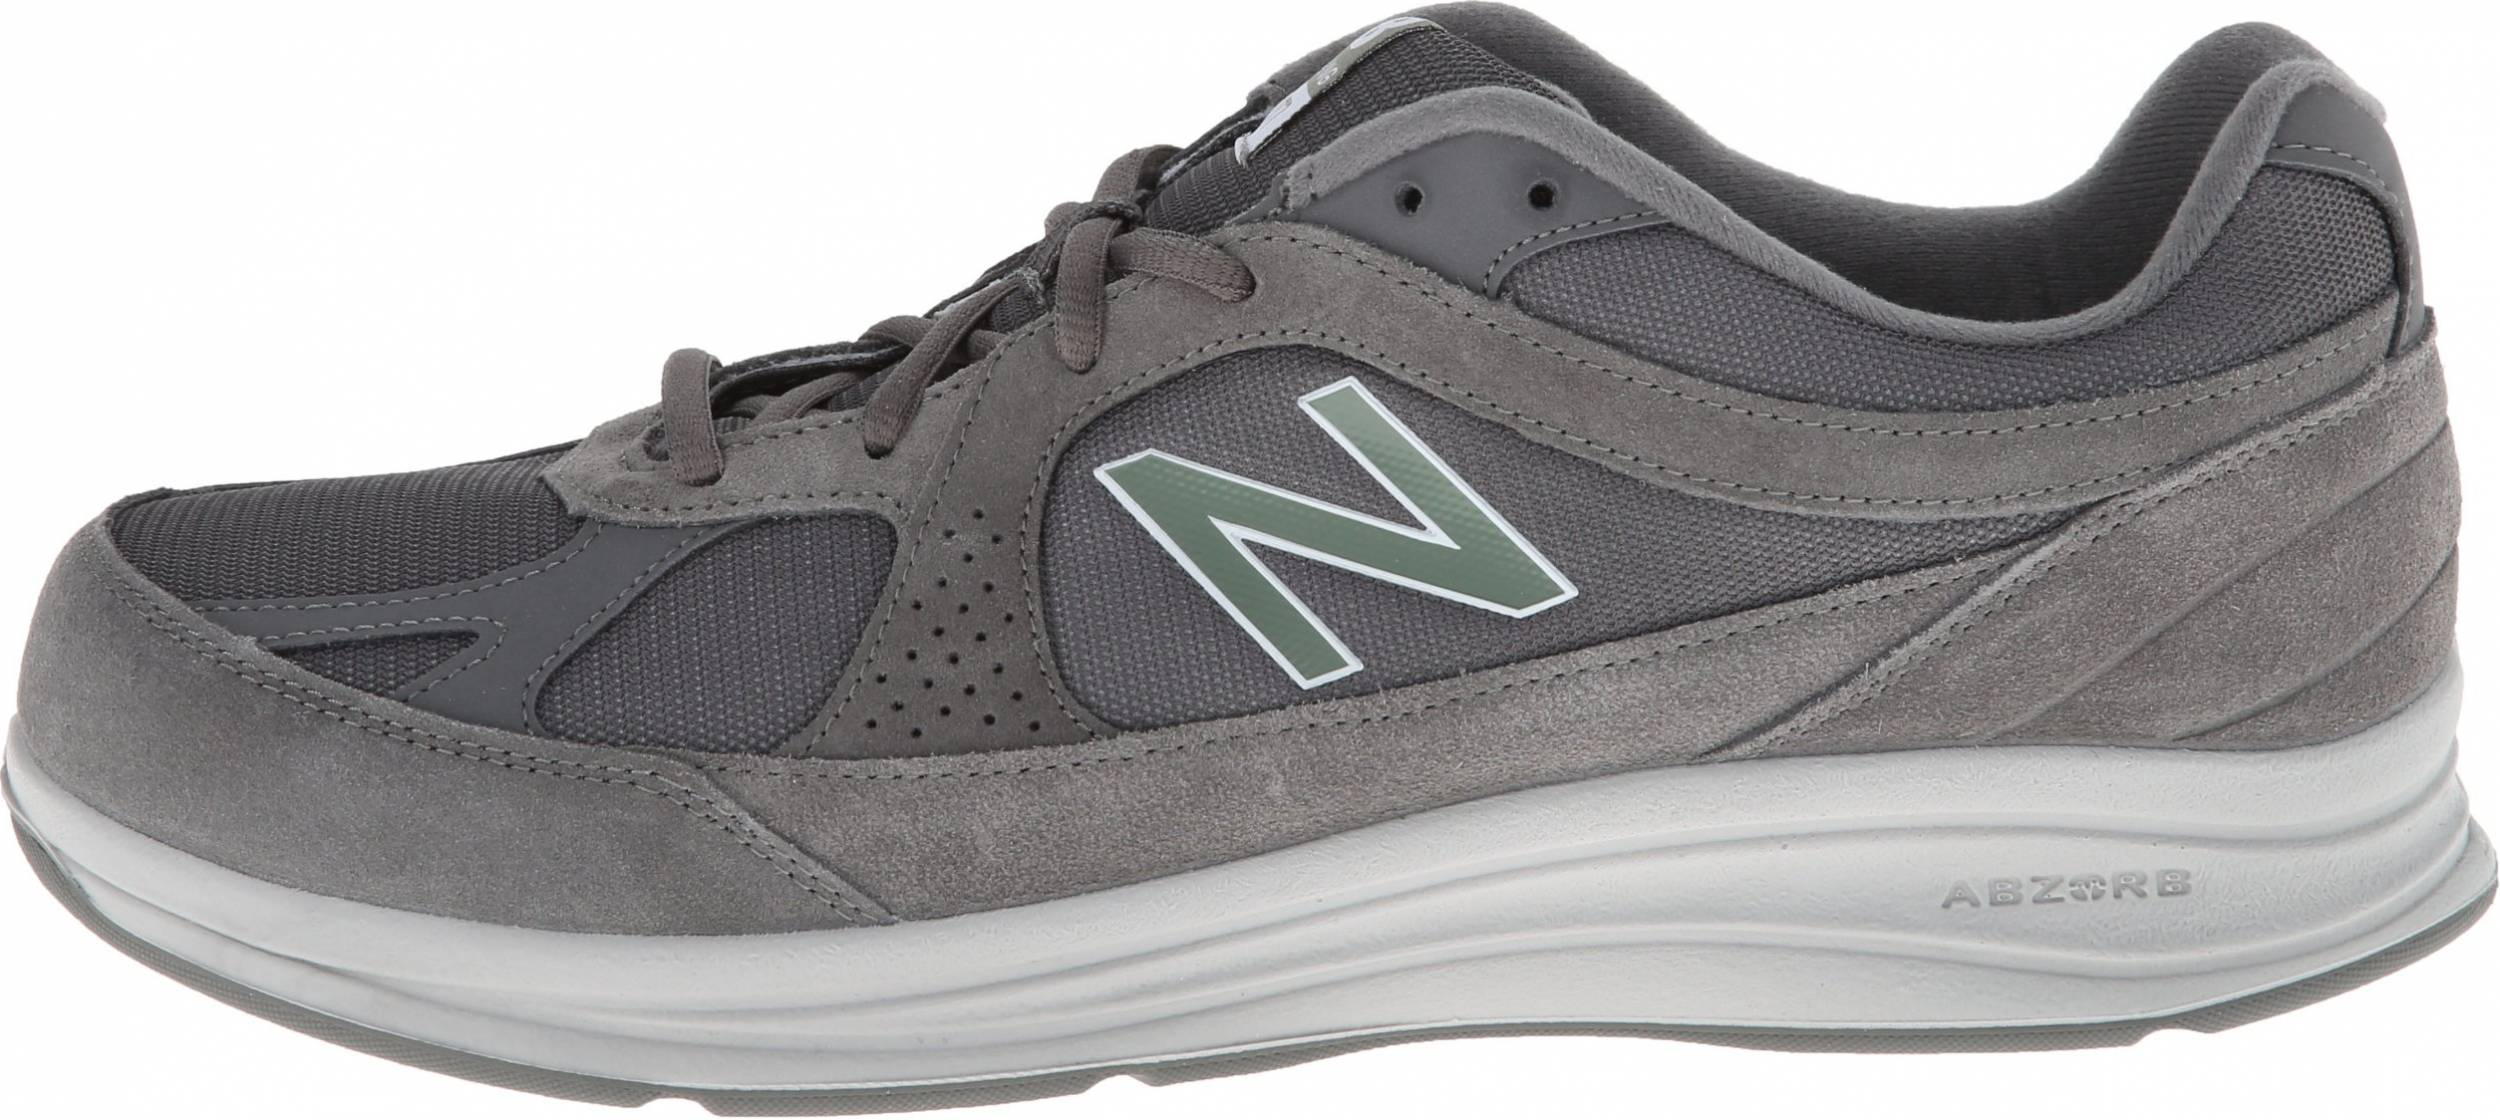 Only $85 + Review of New Balance 877